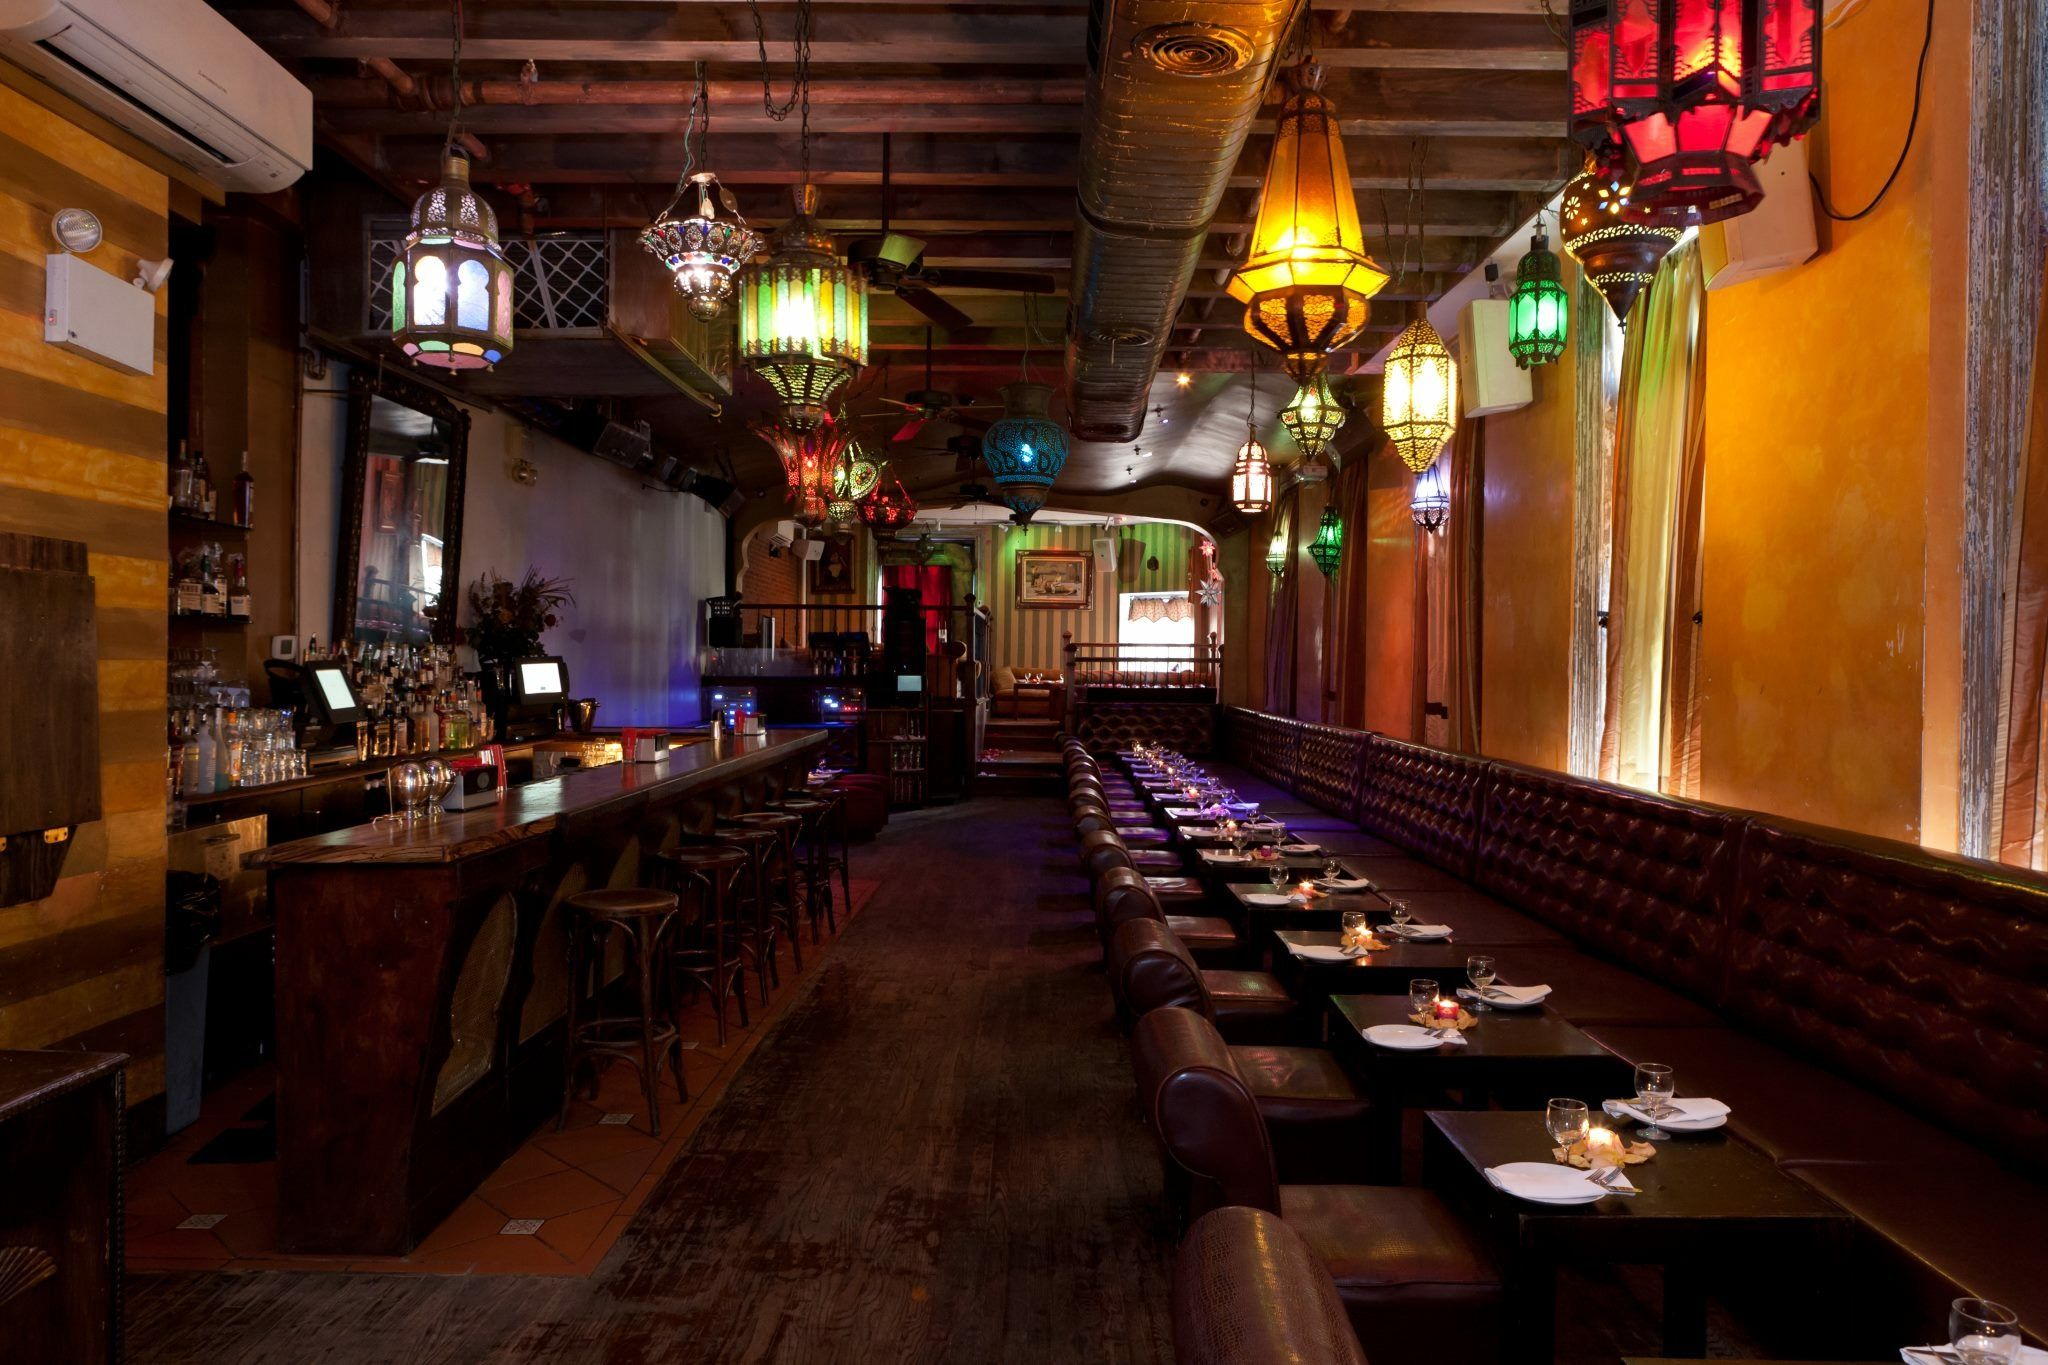 Le Souk Restaurant And Lounge, A Top Rated Moroccan Restaurant For  Bachelorette Party, Birthday Party, Romantic Outdoor Dining For All Sorts  Of Occasion.